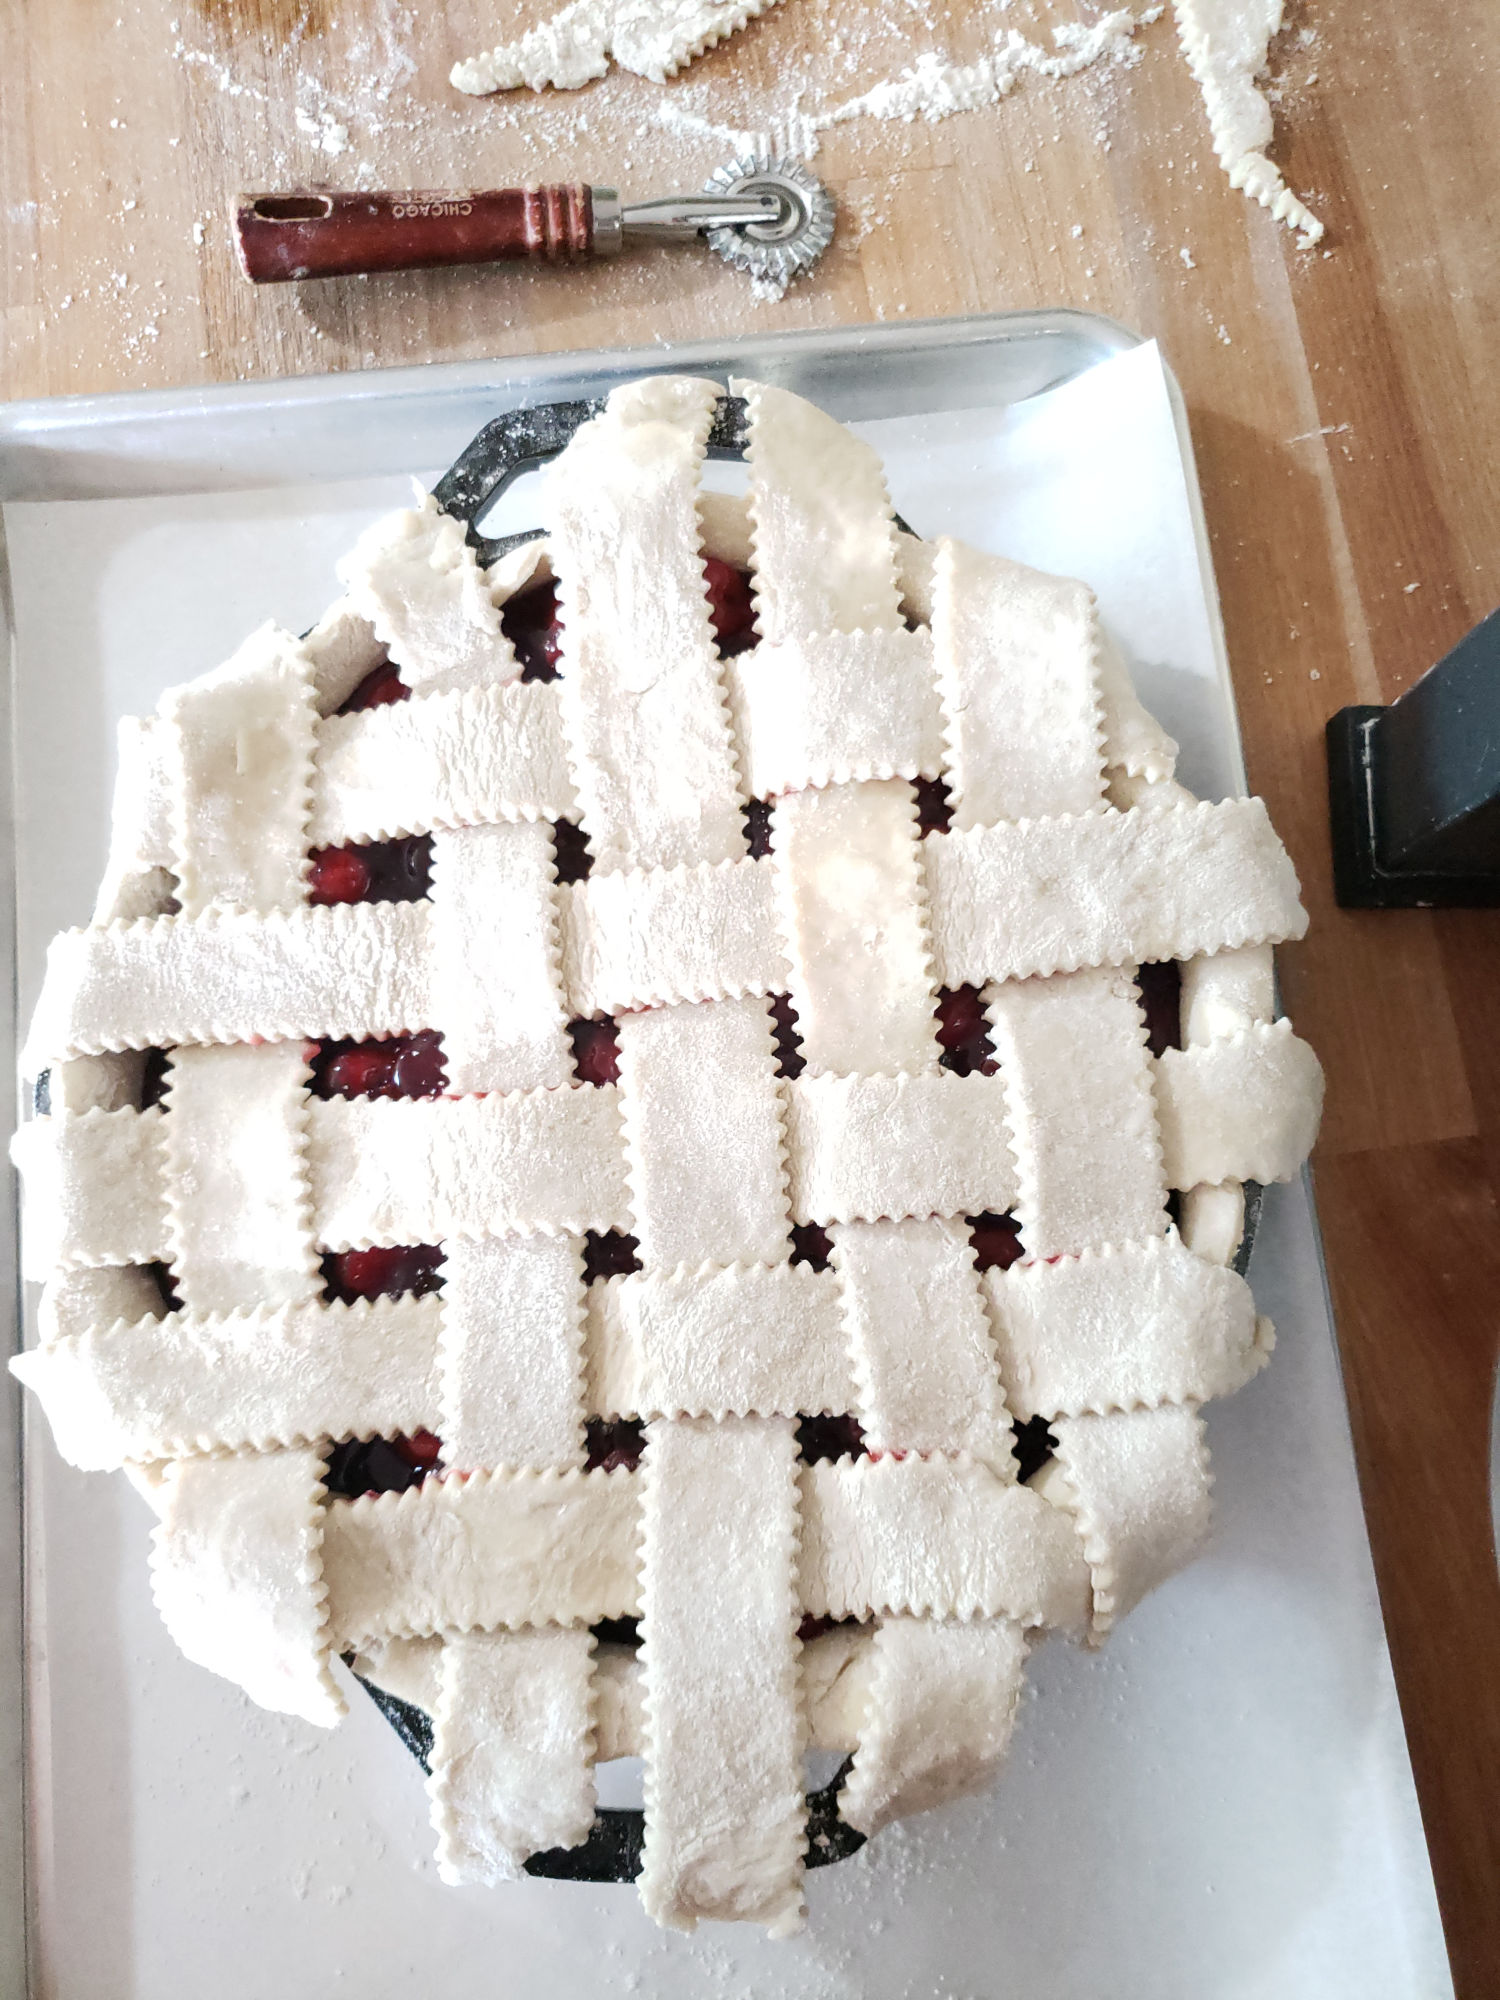 cherry pie with a lattice crust before baking in a 2-handle cast iron skillet.